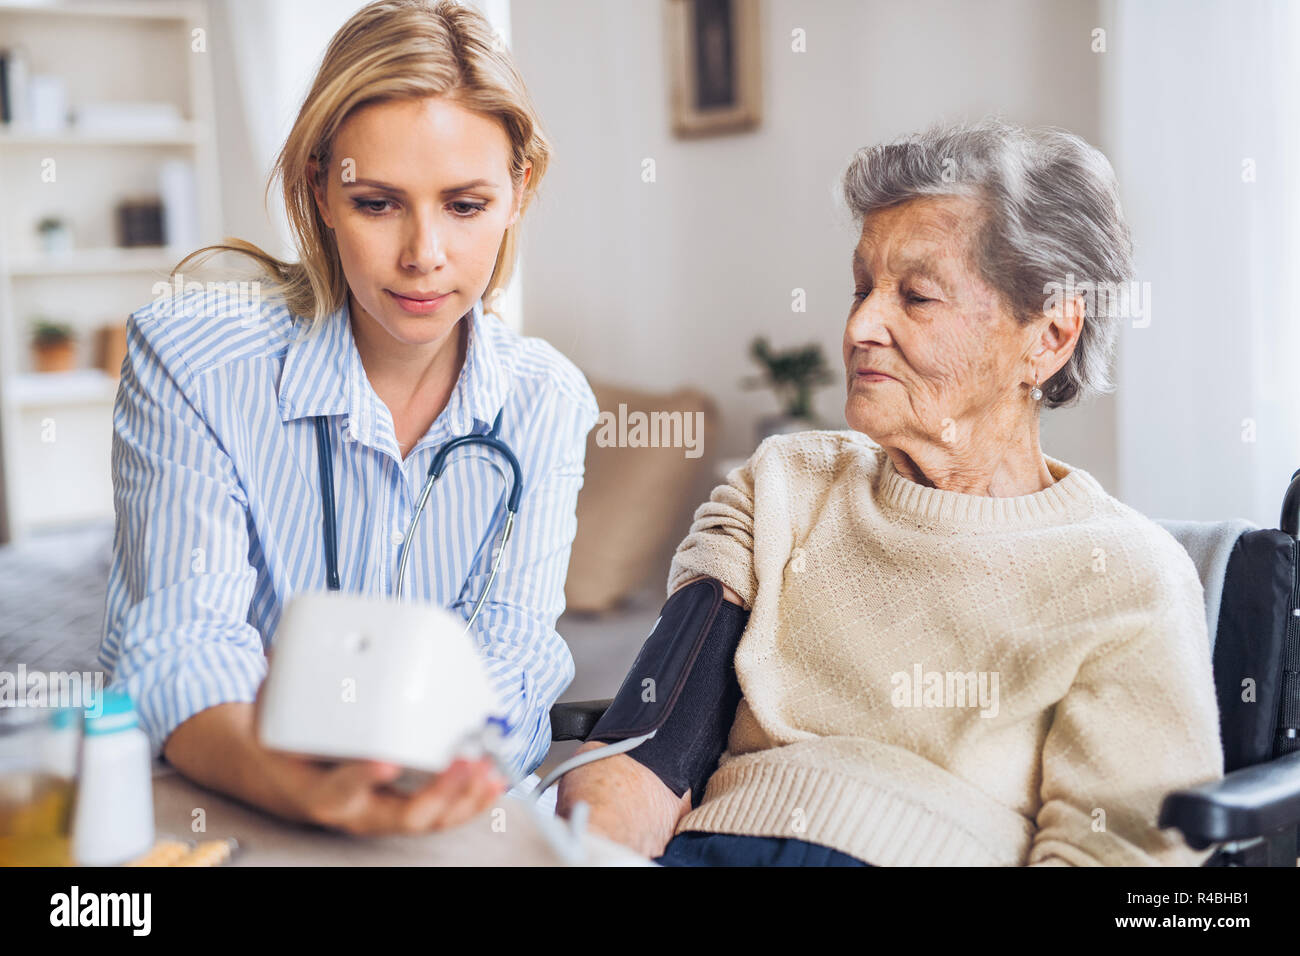 a health visitor measuring a blood pressure of a senior woman at rh alamy com woman at home bread pudding woman at home alone